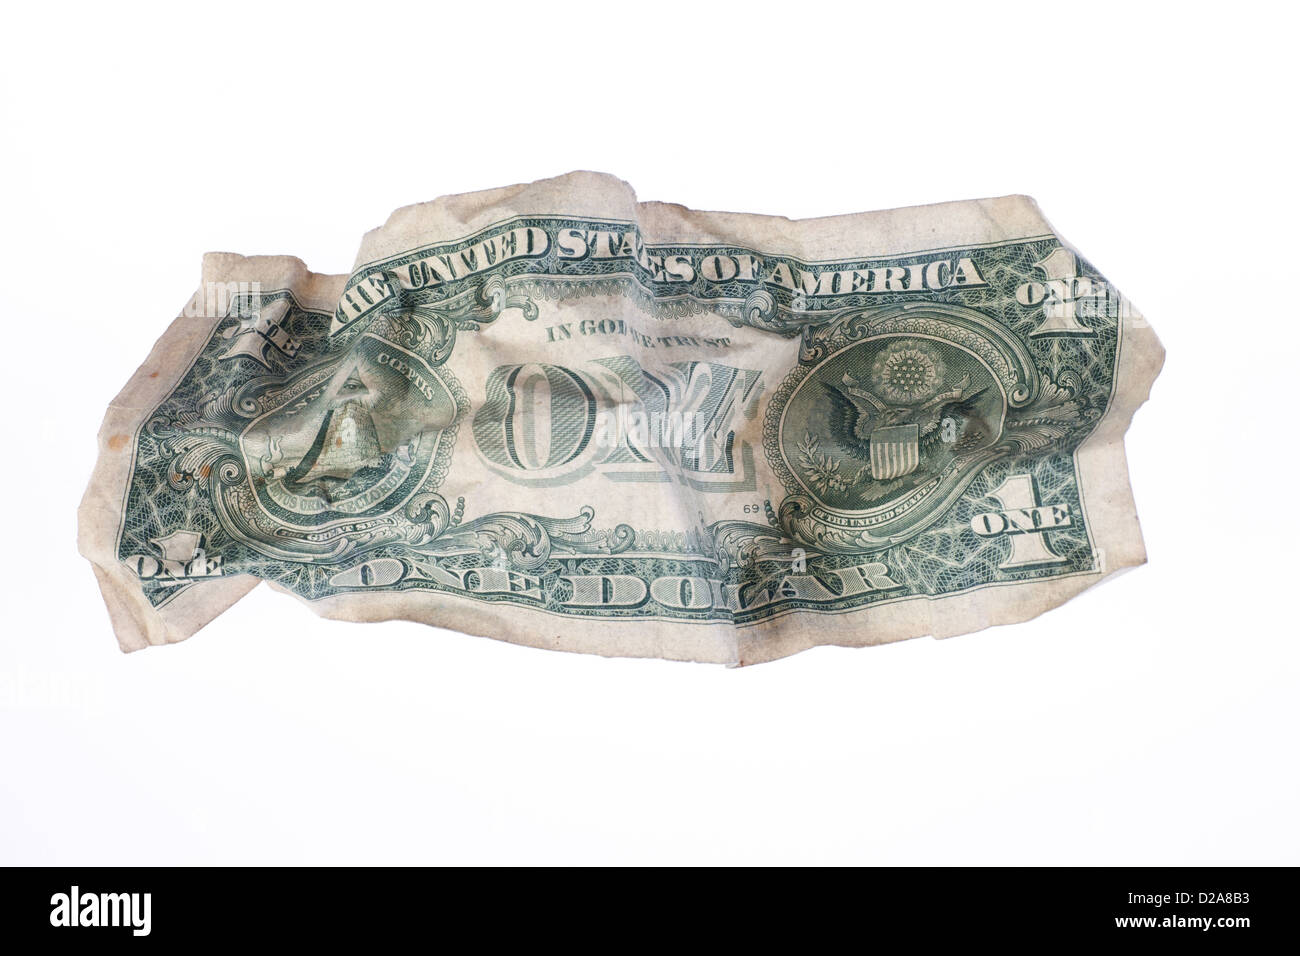 Berlin, Germany, crumpled U.S. dollar bill - Stock Image